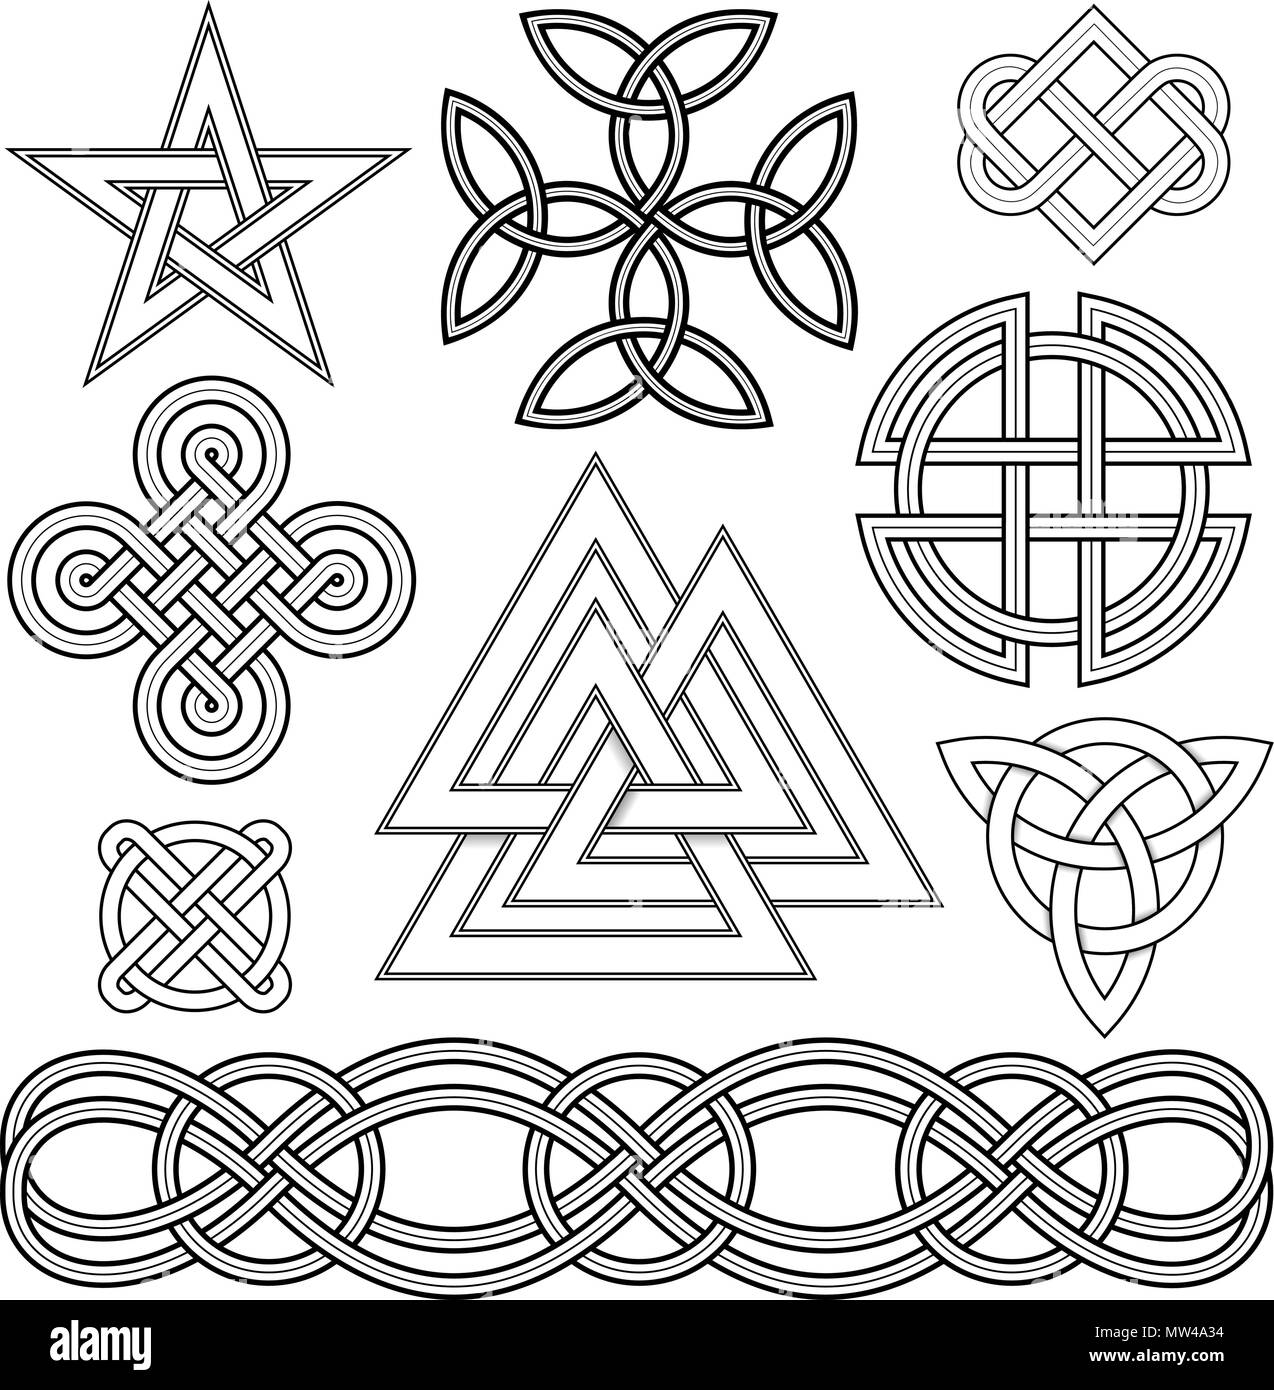 Set Of Editable Vector Celtic Knot Designs Stock Vector Image Art Alamy